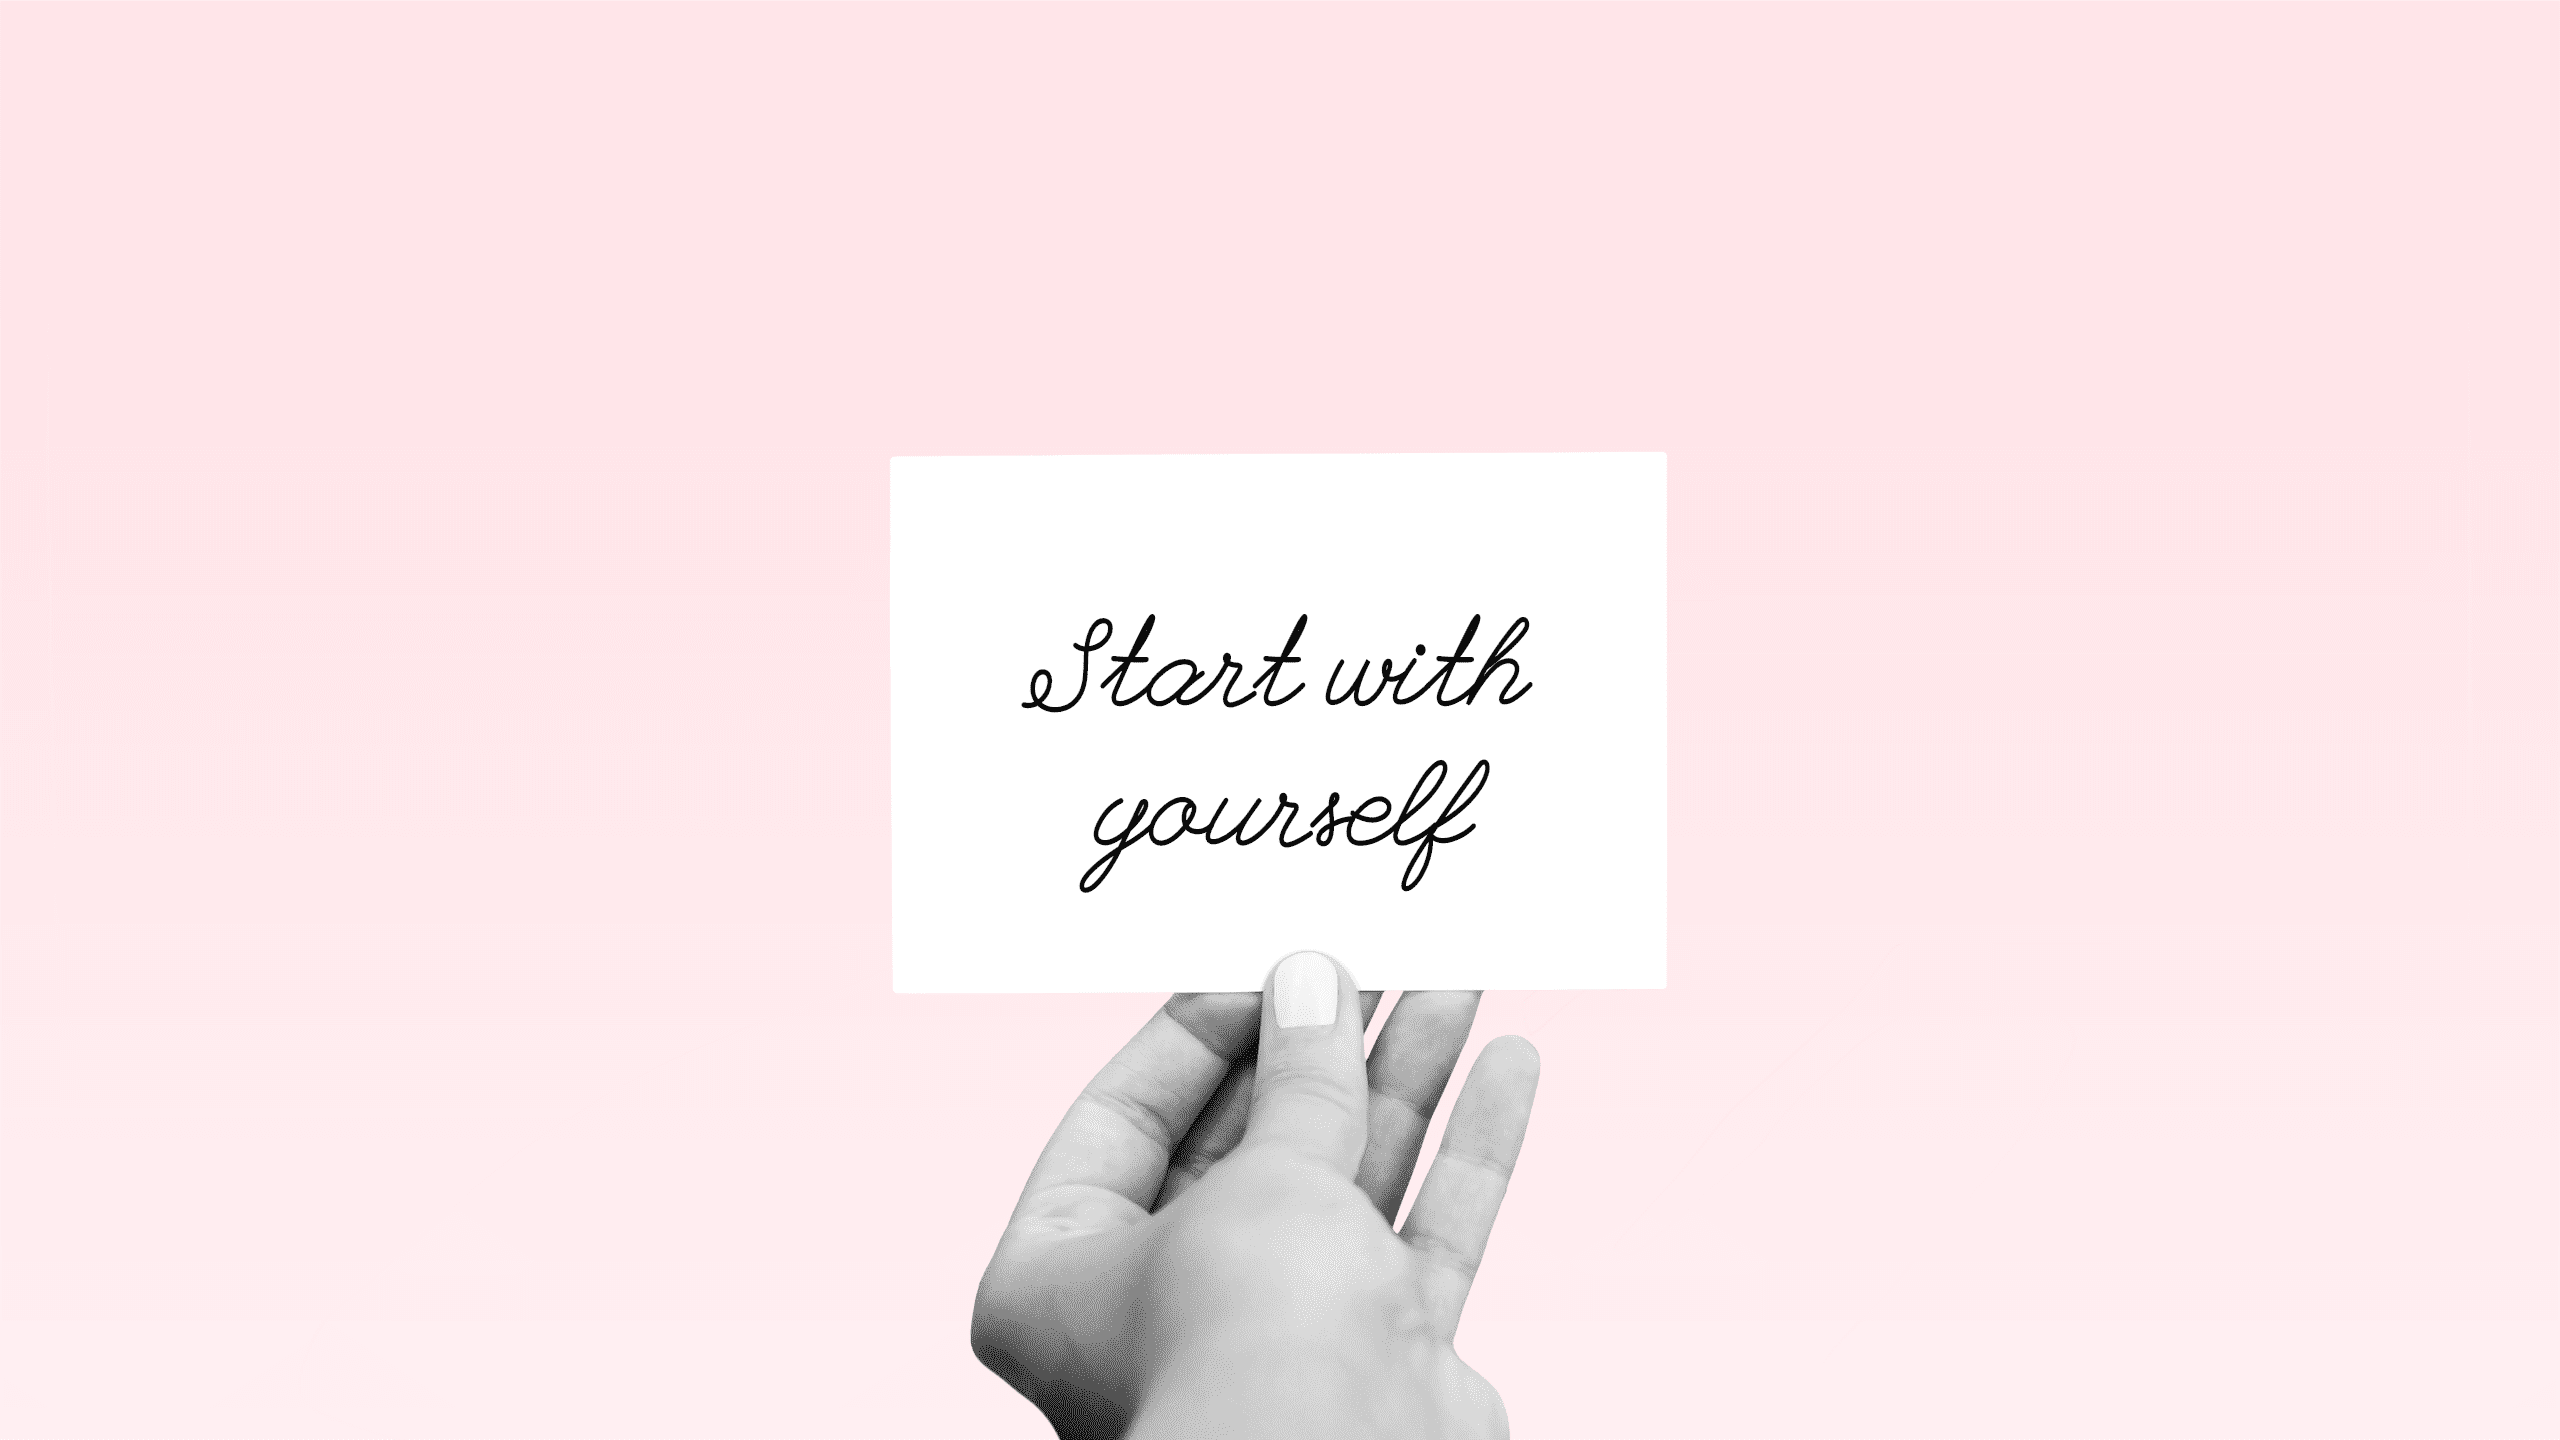 16-start-with-yourself-self-motivation-quote-template-for-social-media